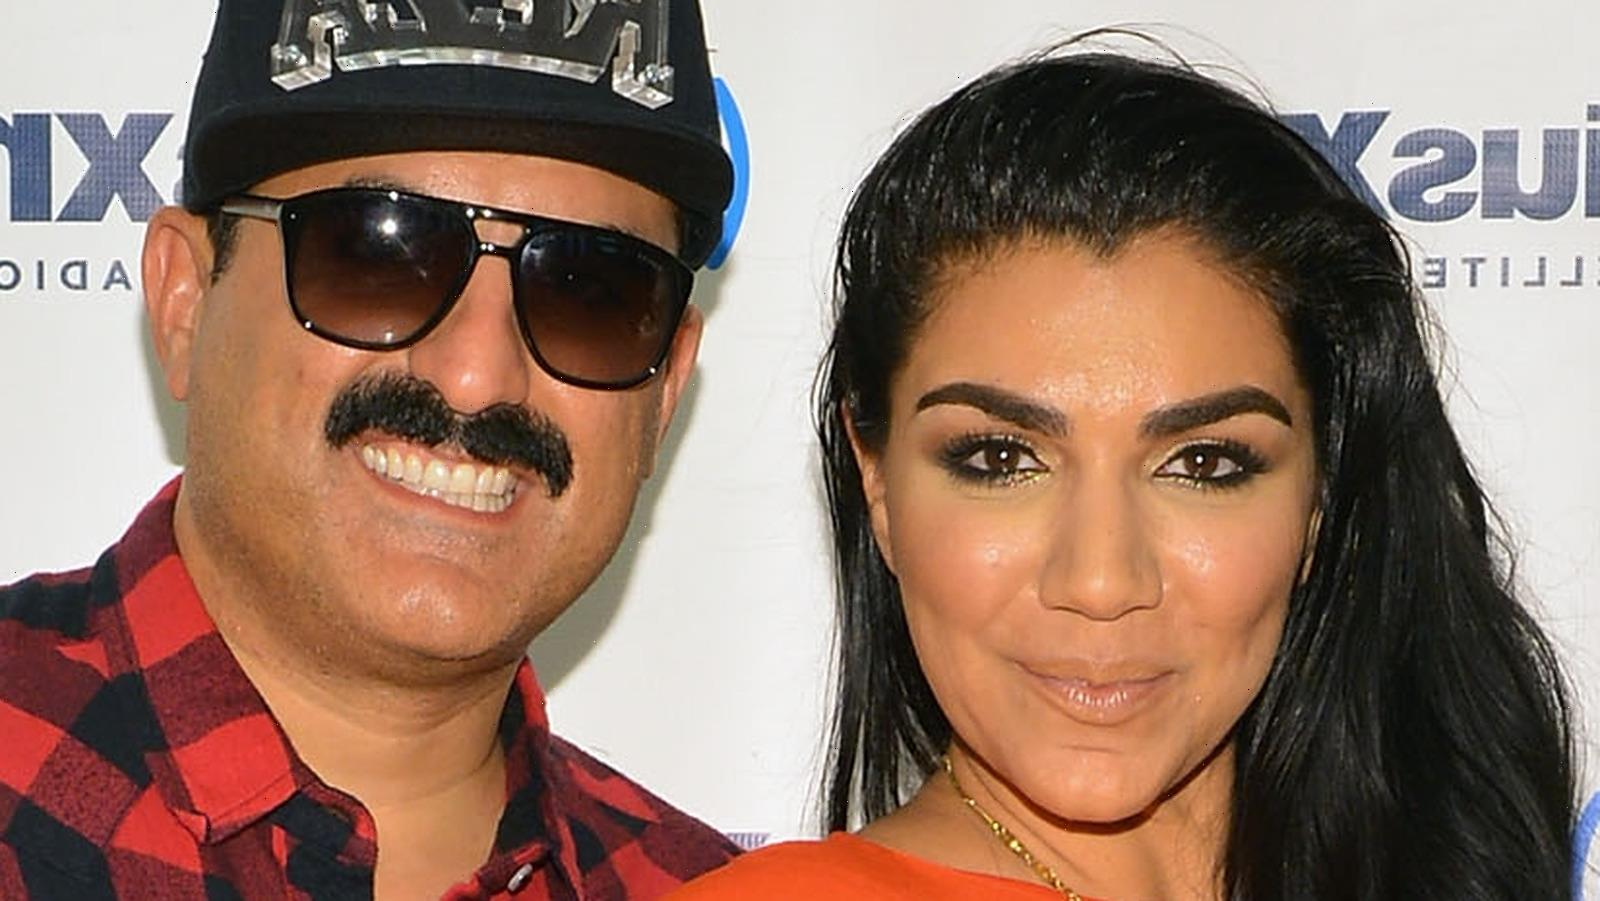 Who Is The Richest Cast Member Of Shahs Of Sunset?